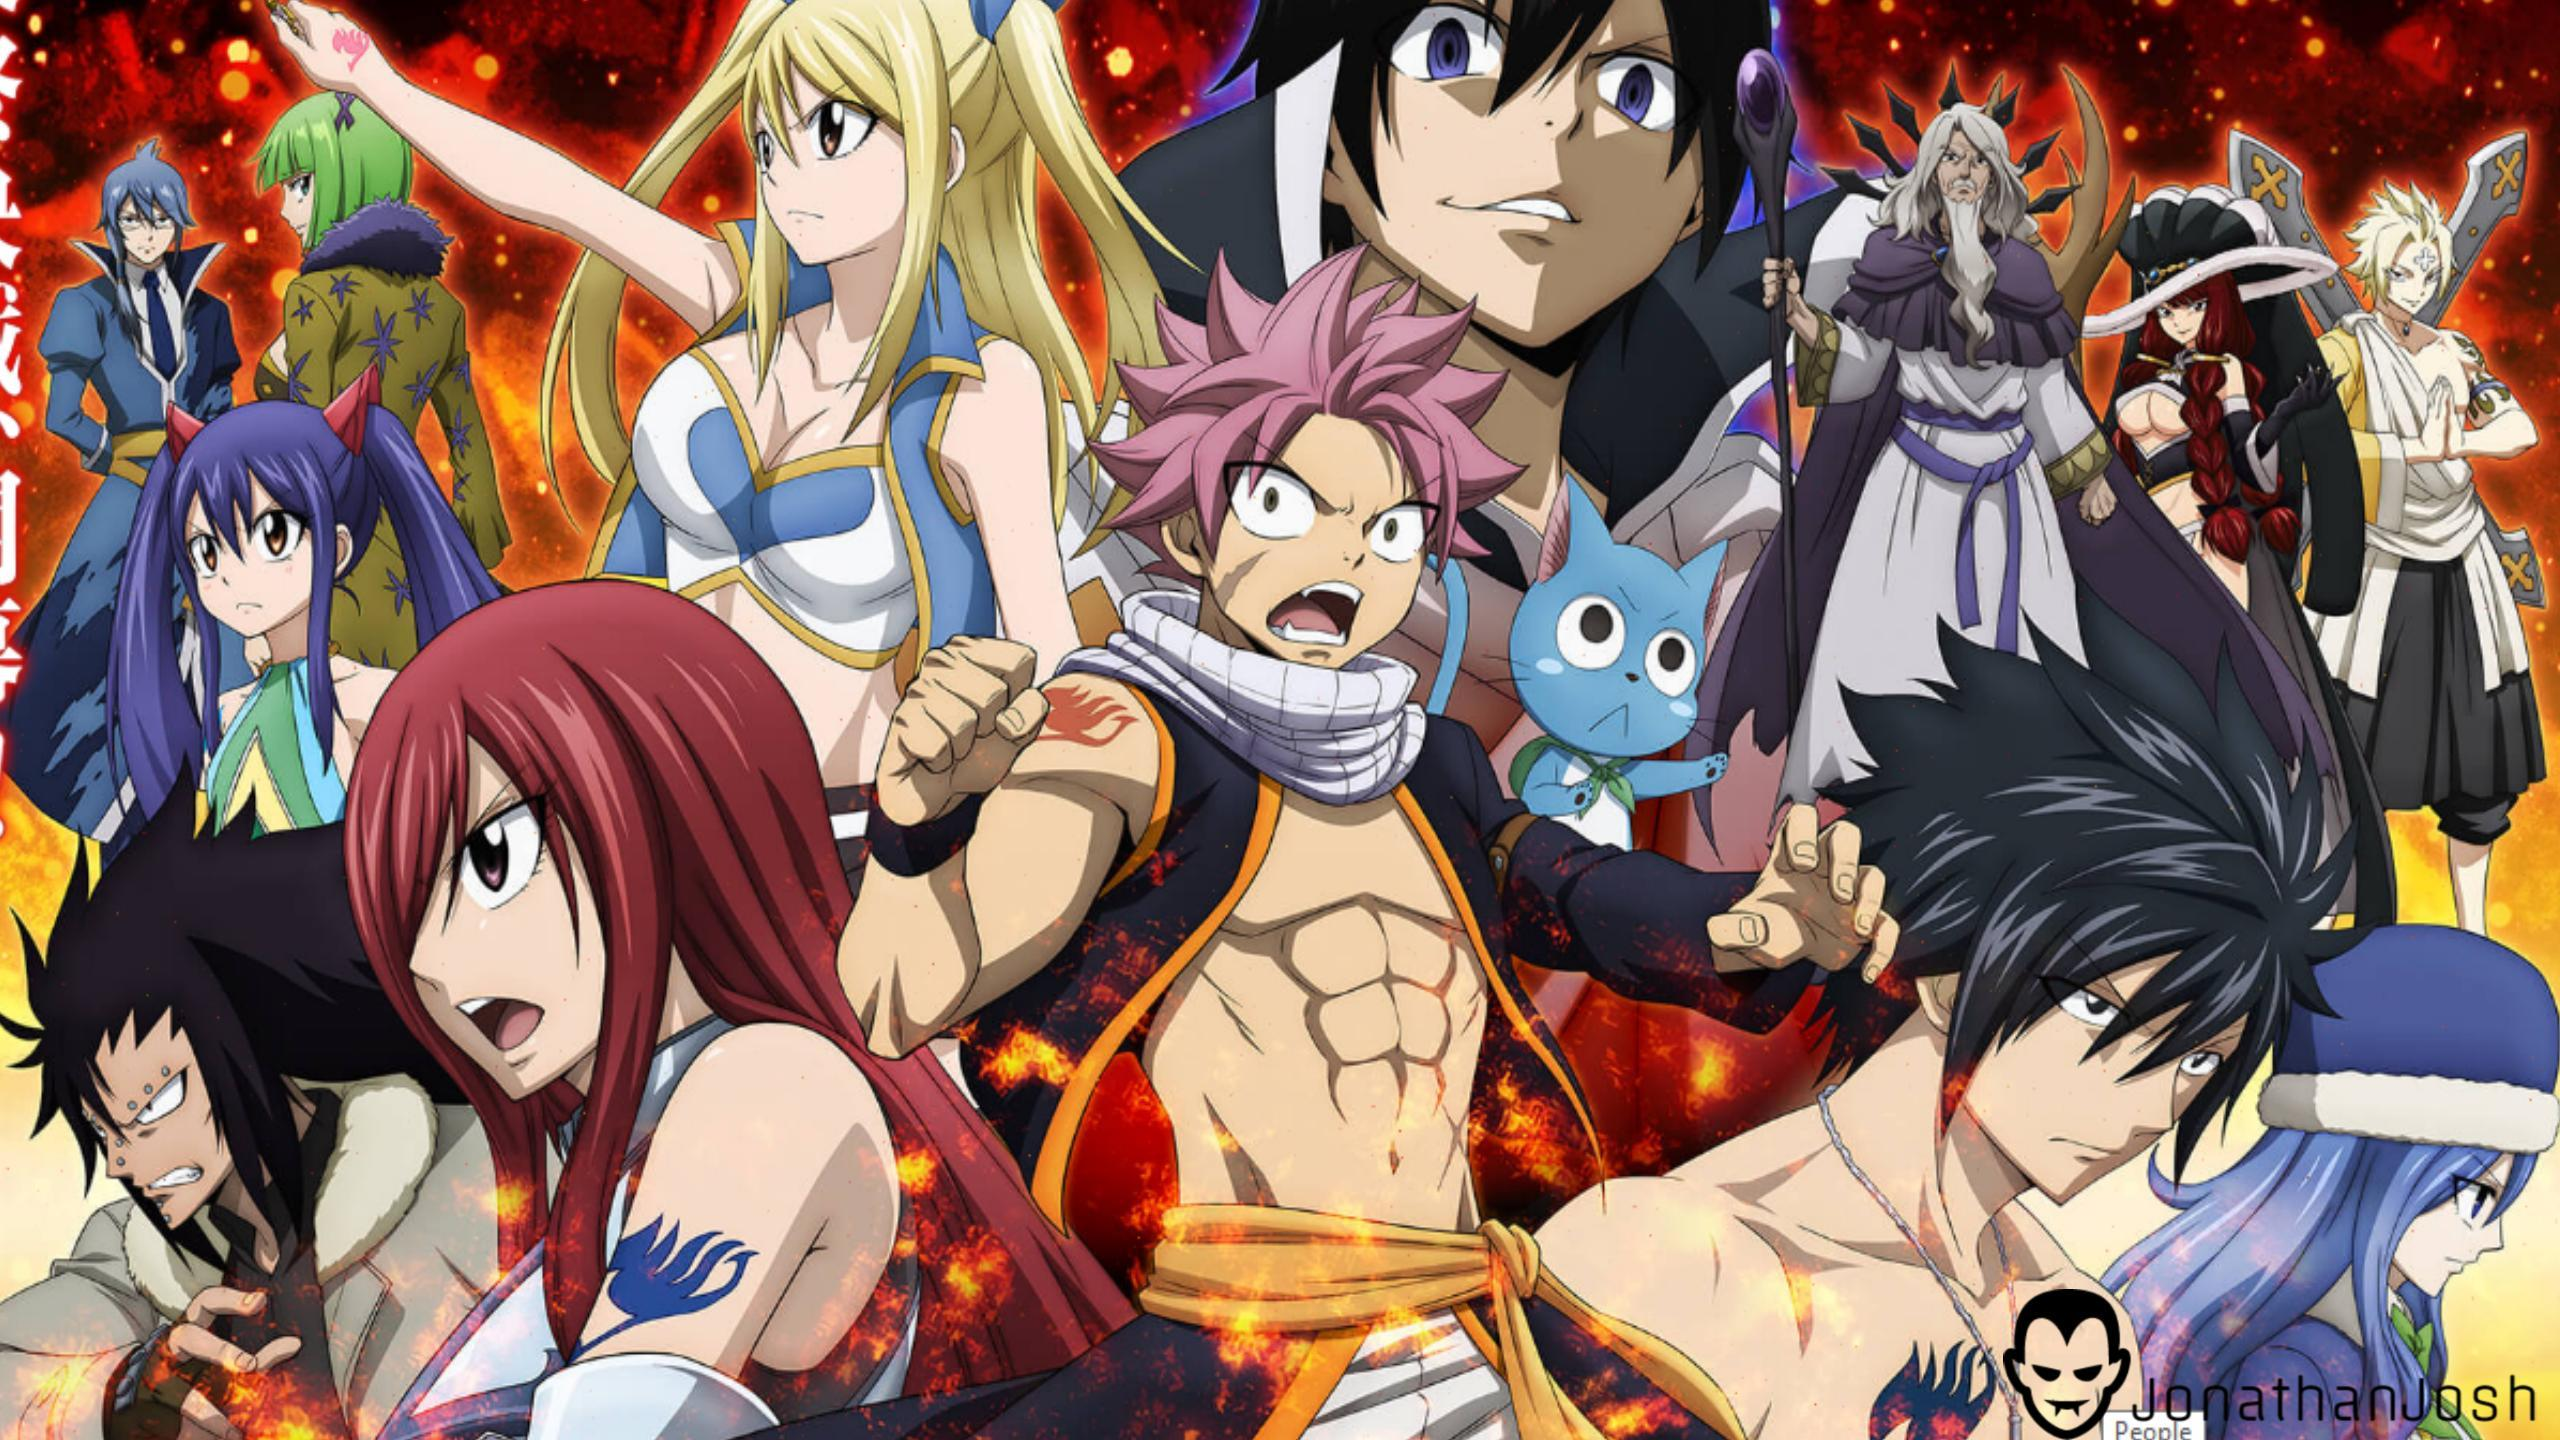 Download Fairy Tail Wallpaper Hd Backgrounds Download Itlcat